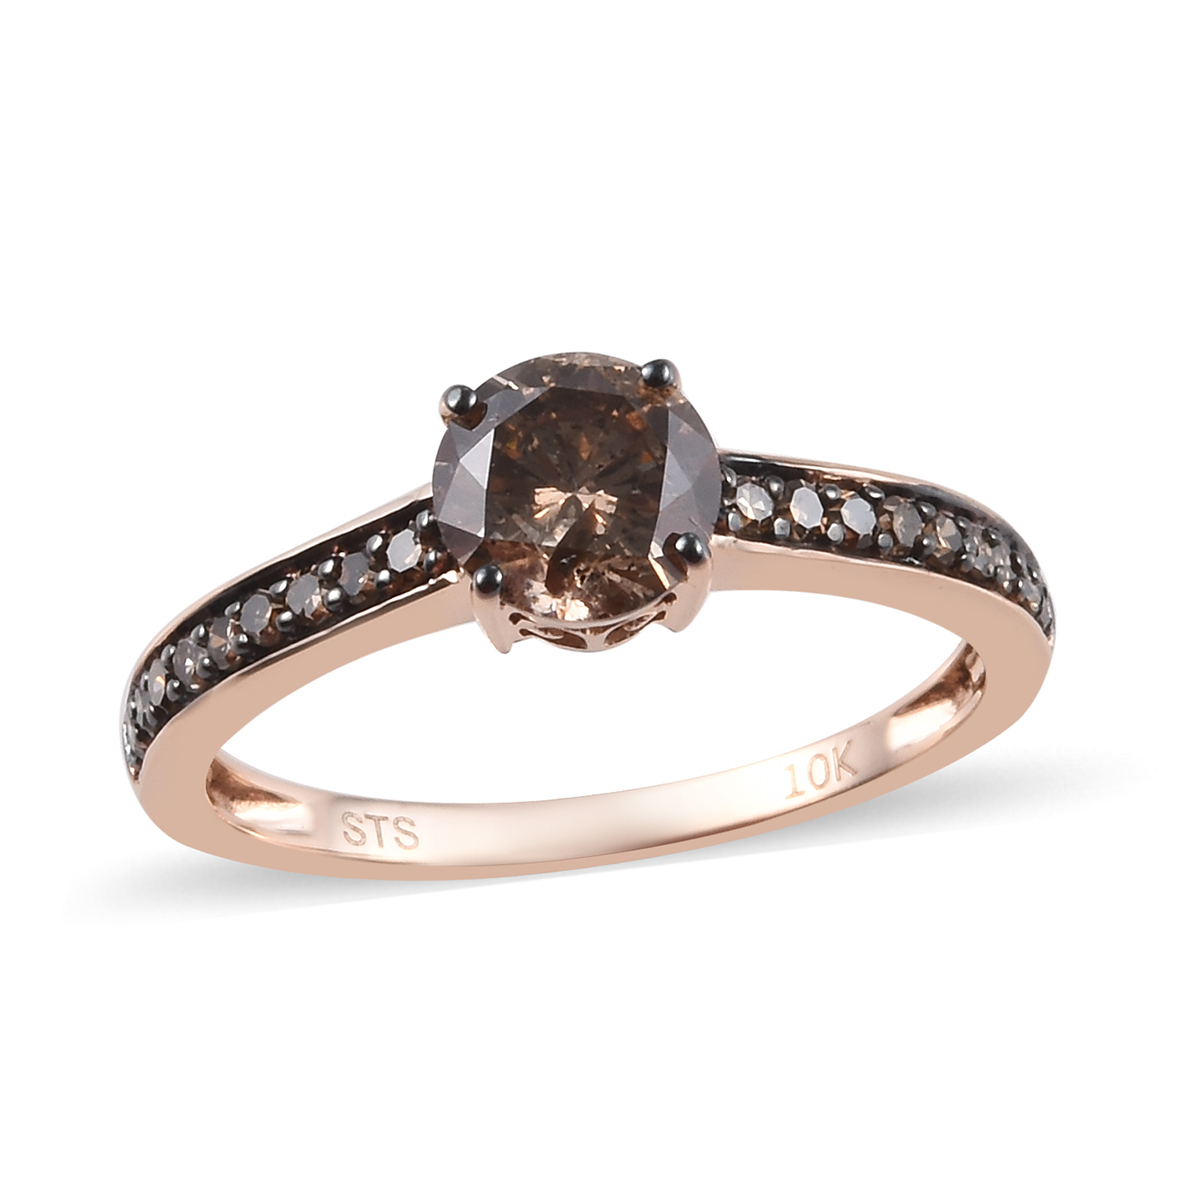 1 Ctw Natural Champagne Diamond Ring In 10K Rose Gold 1.80